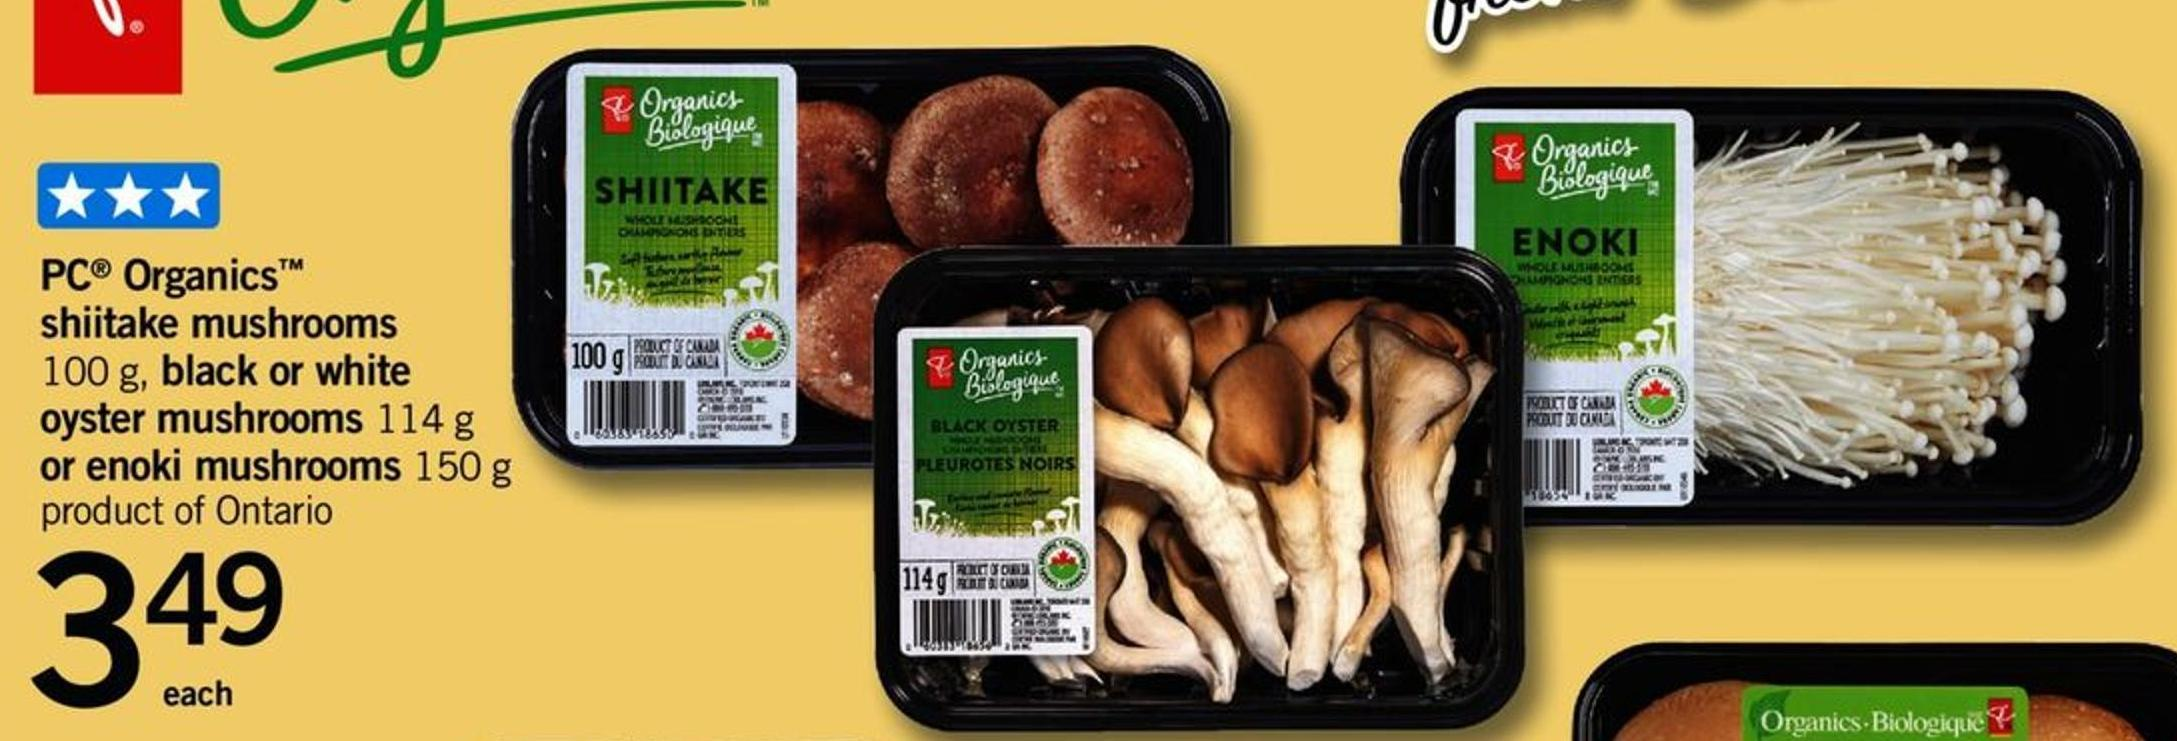 PC Organics Shiitake Mushrooms - 100 G - Black Or White Oyster Mushrooms - 114 G Or Enoki Mushrooms - 150 G